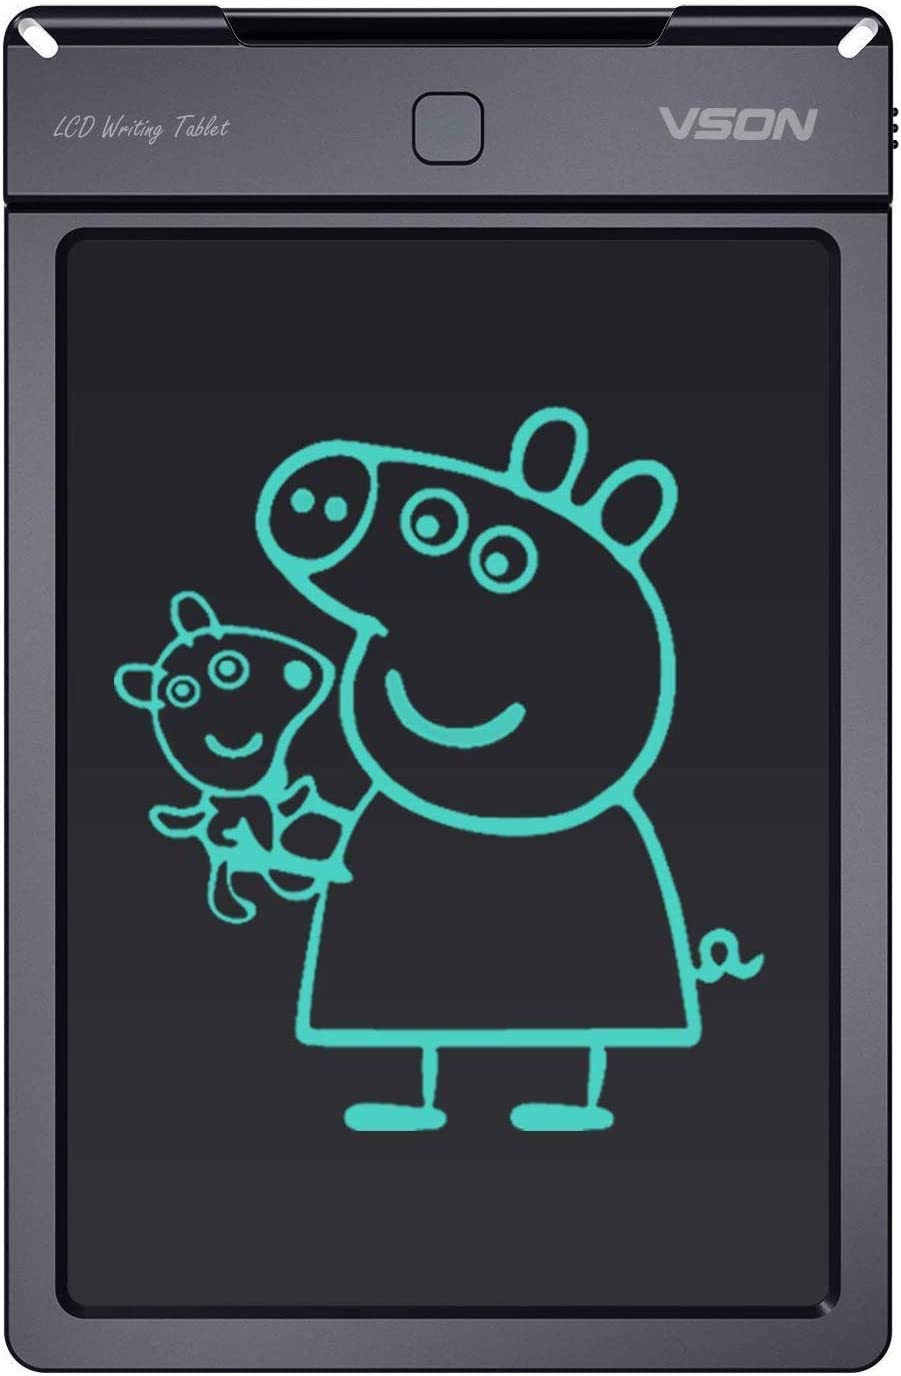 VSON LCD Writing Tablet 9 Inch Electronic Doodle Board Kids Drawing Tablet,Best Gifts for Kids Black